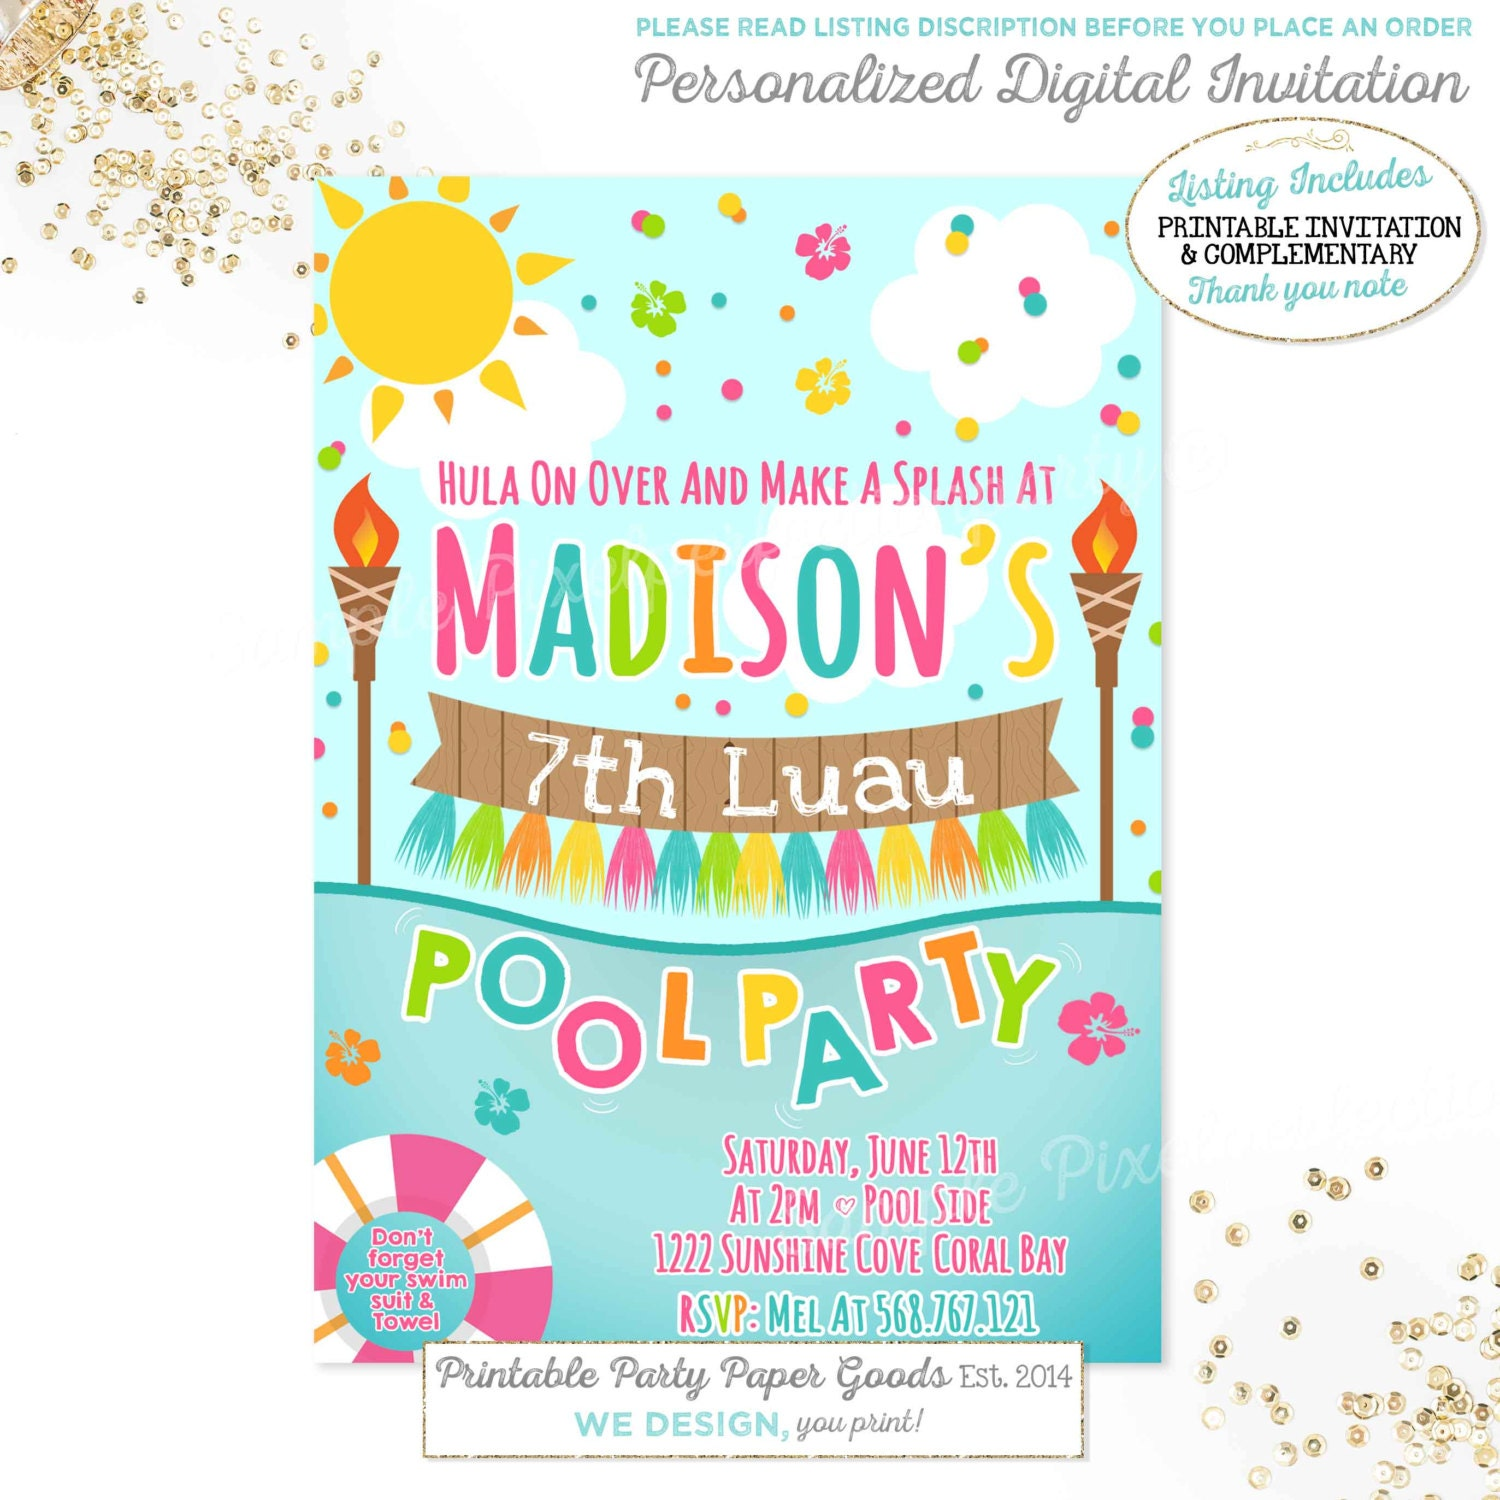 Luau invitations – Tropical Birthday Invitations